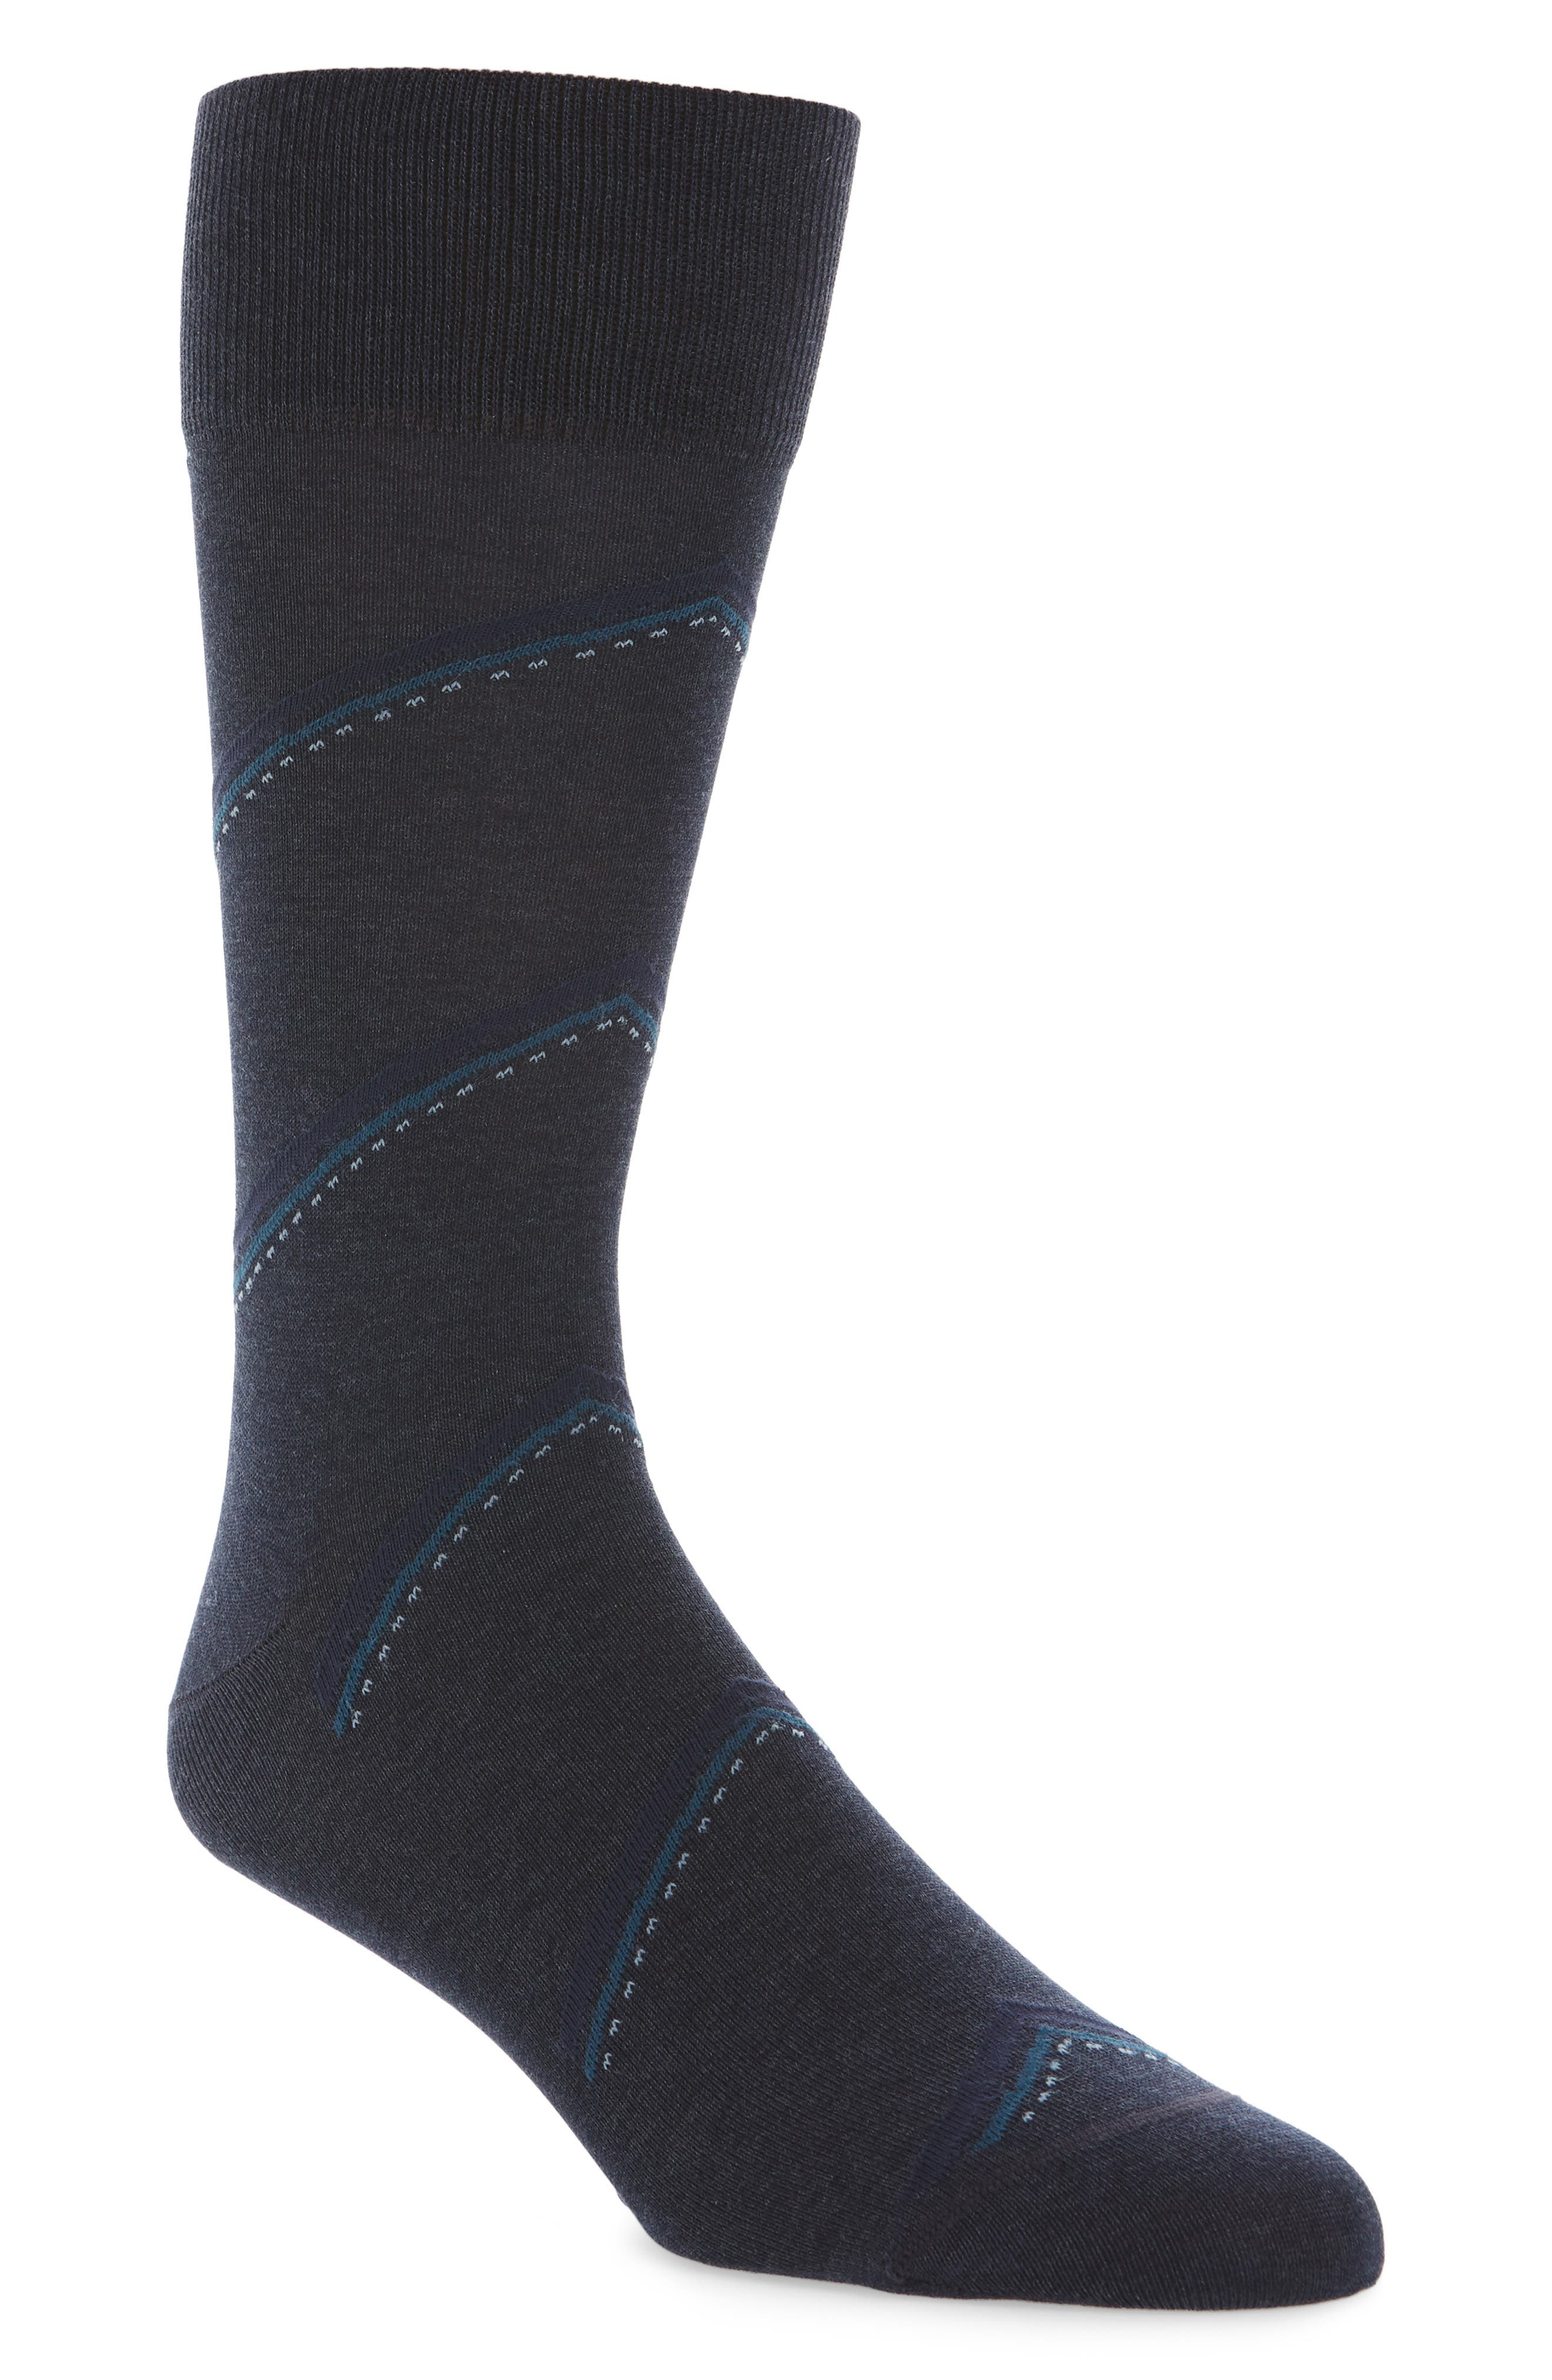 Bias Stripe Socks,                             Main thumbnail 1, color,                             Navy Heather/ Teal